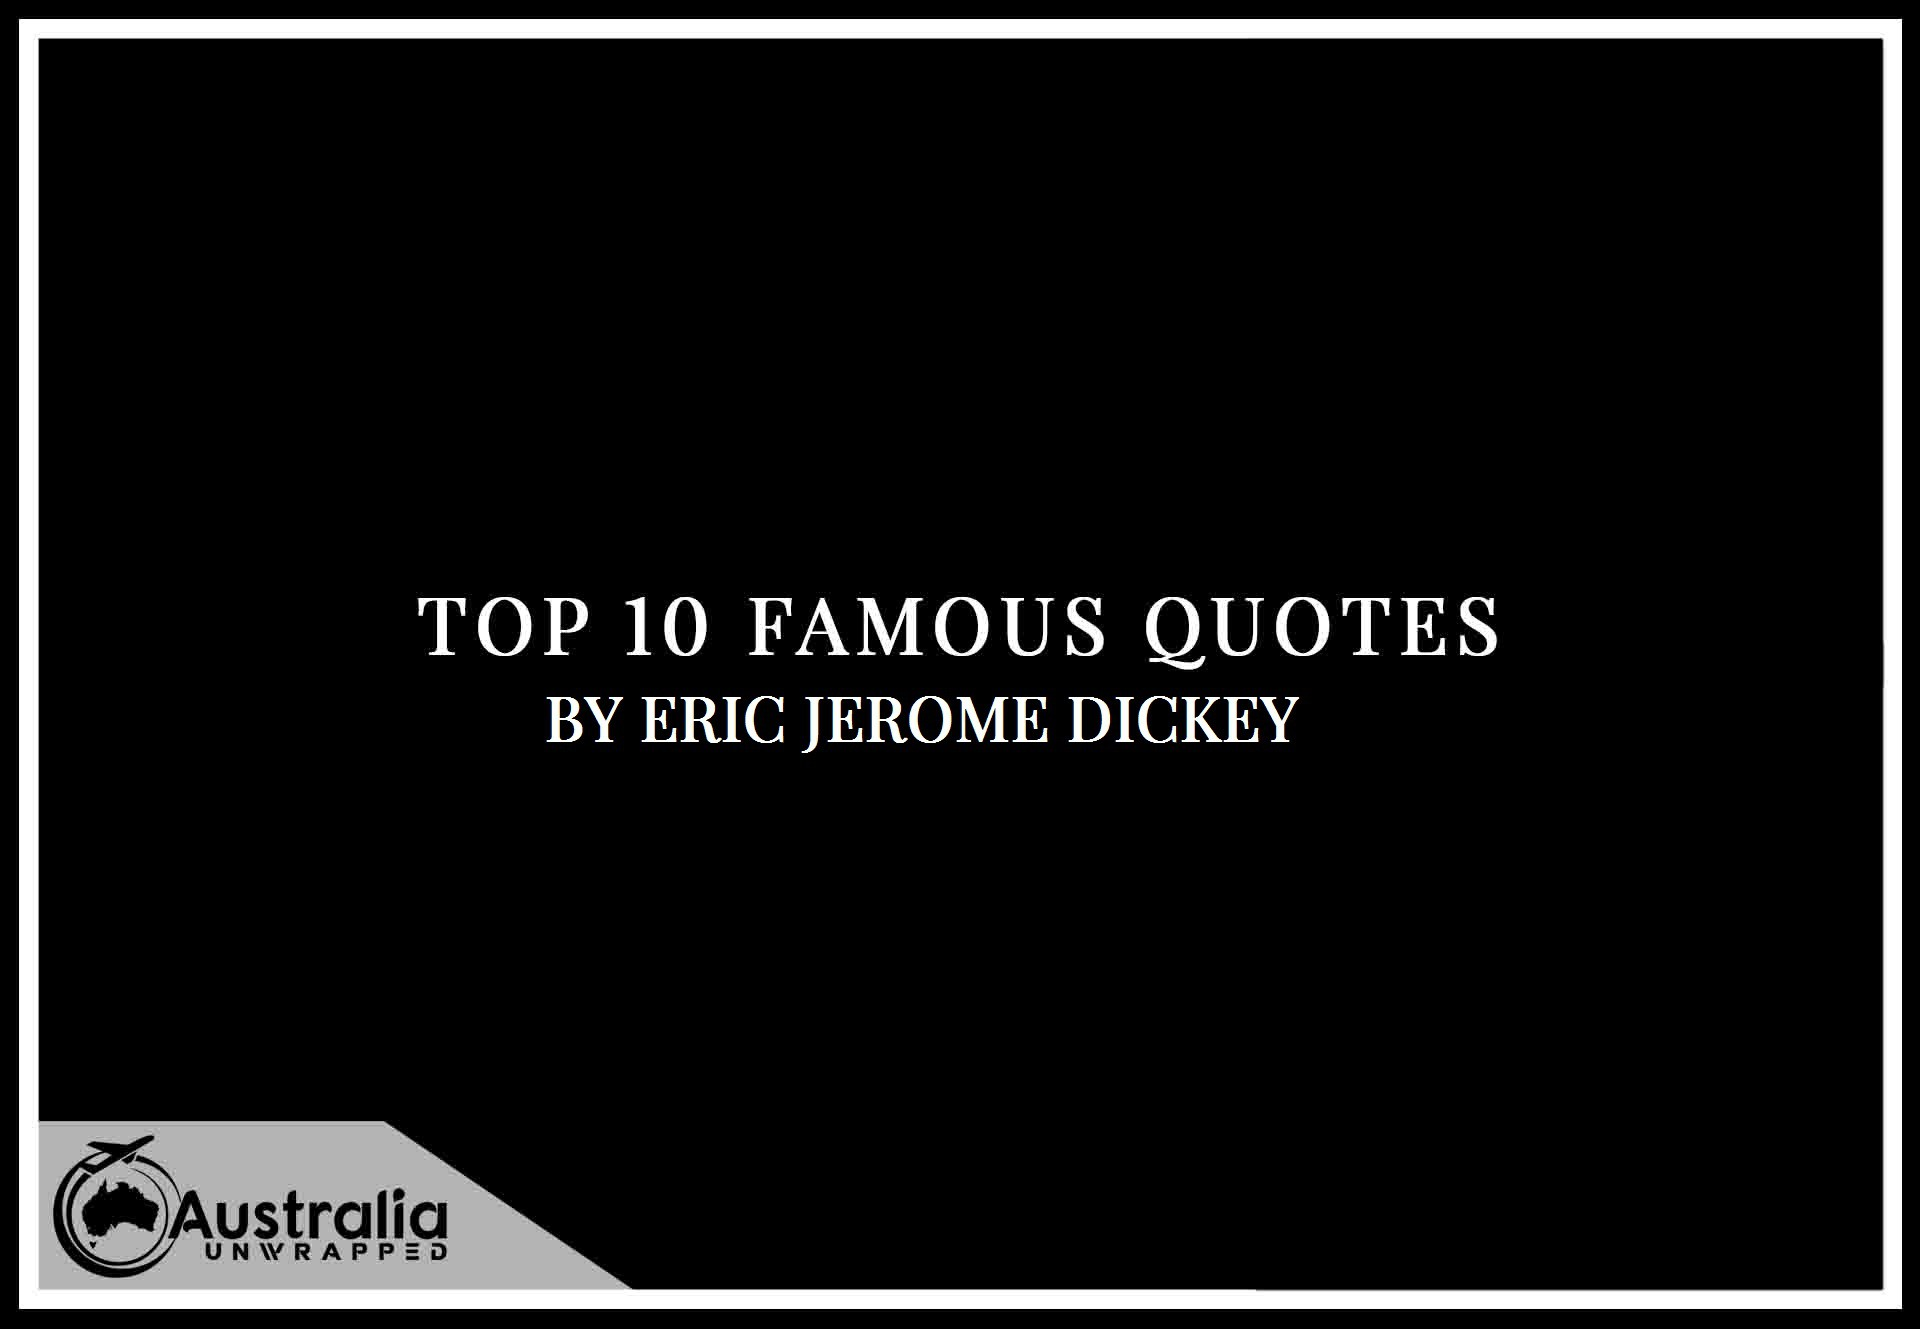 Eric Jerome Dickey's Top 10 Popular and Famous Quotes